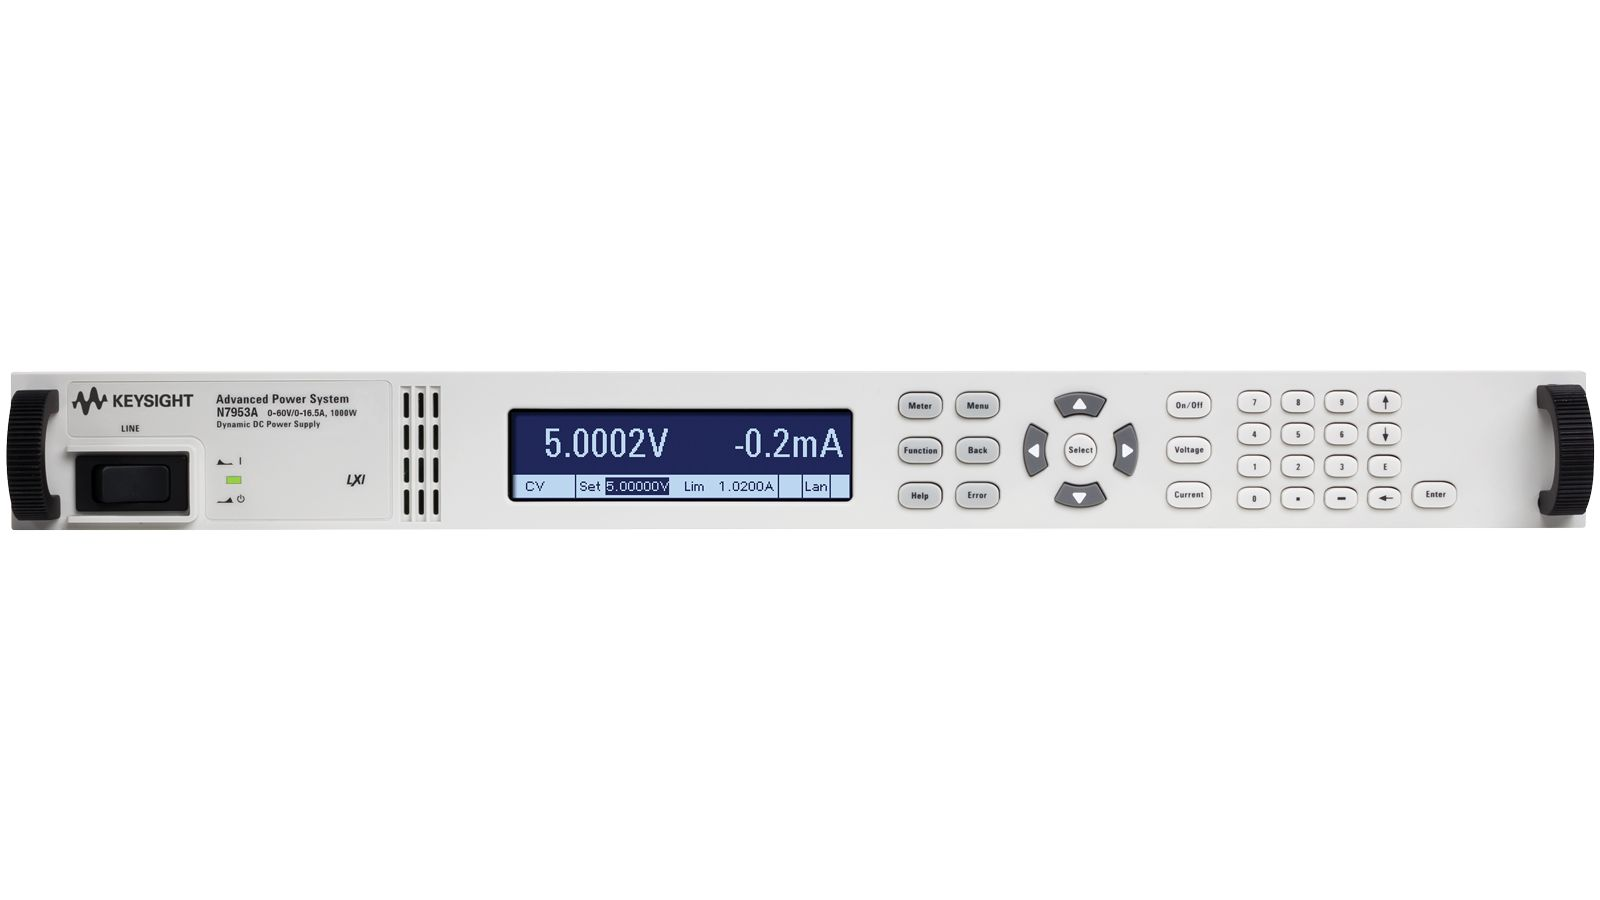 N7900 Series Advanced Power Supplies